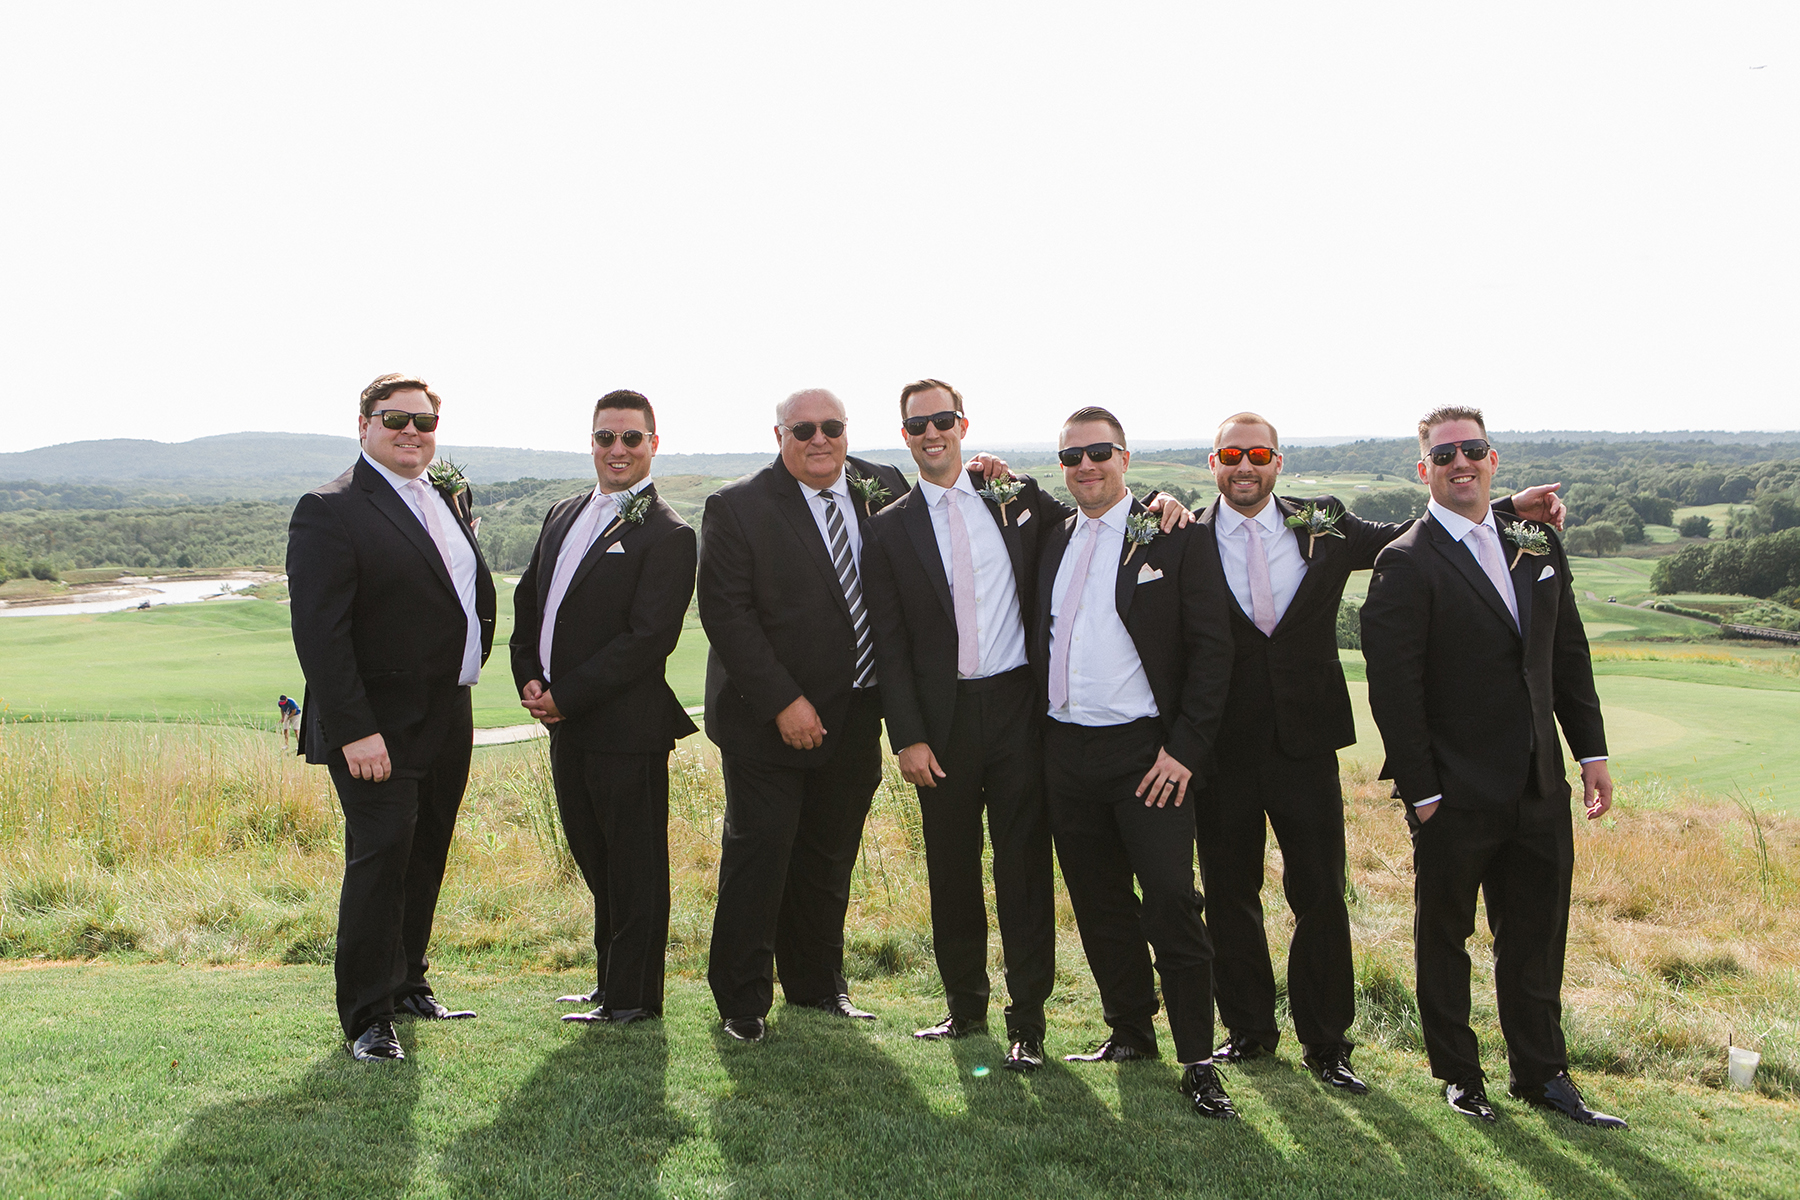 21-quincy-granite-links-wedding-boston.jpg